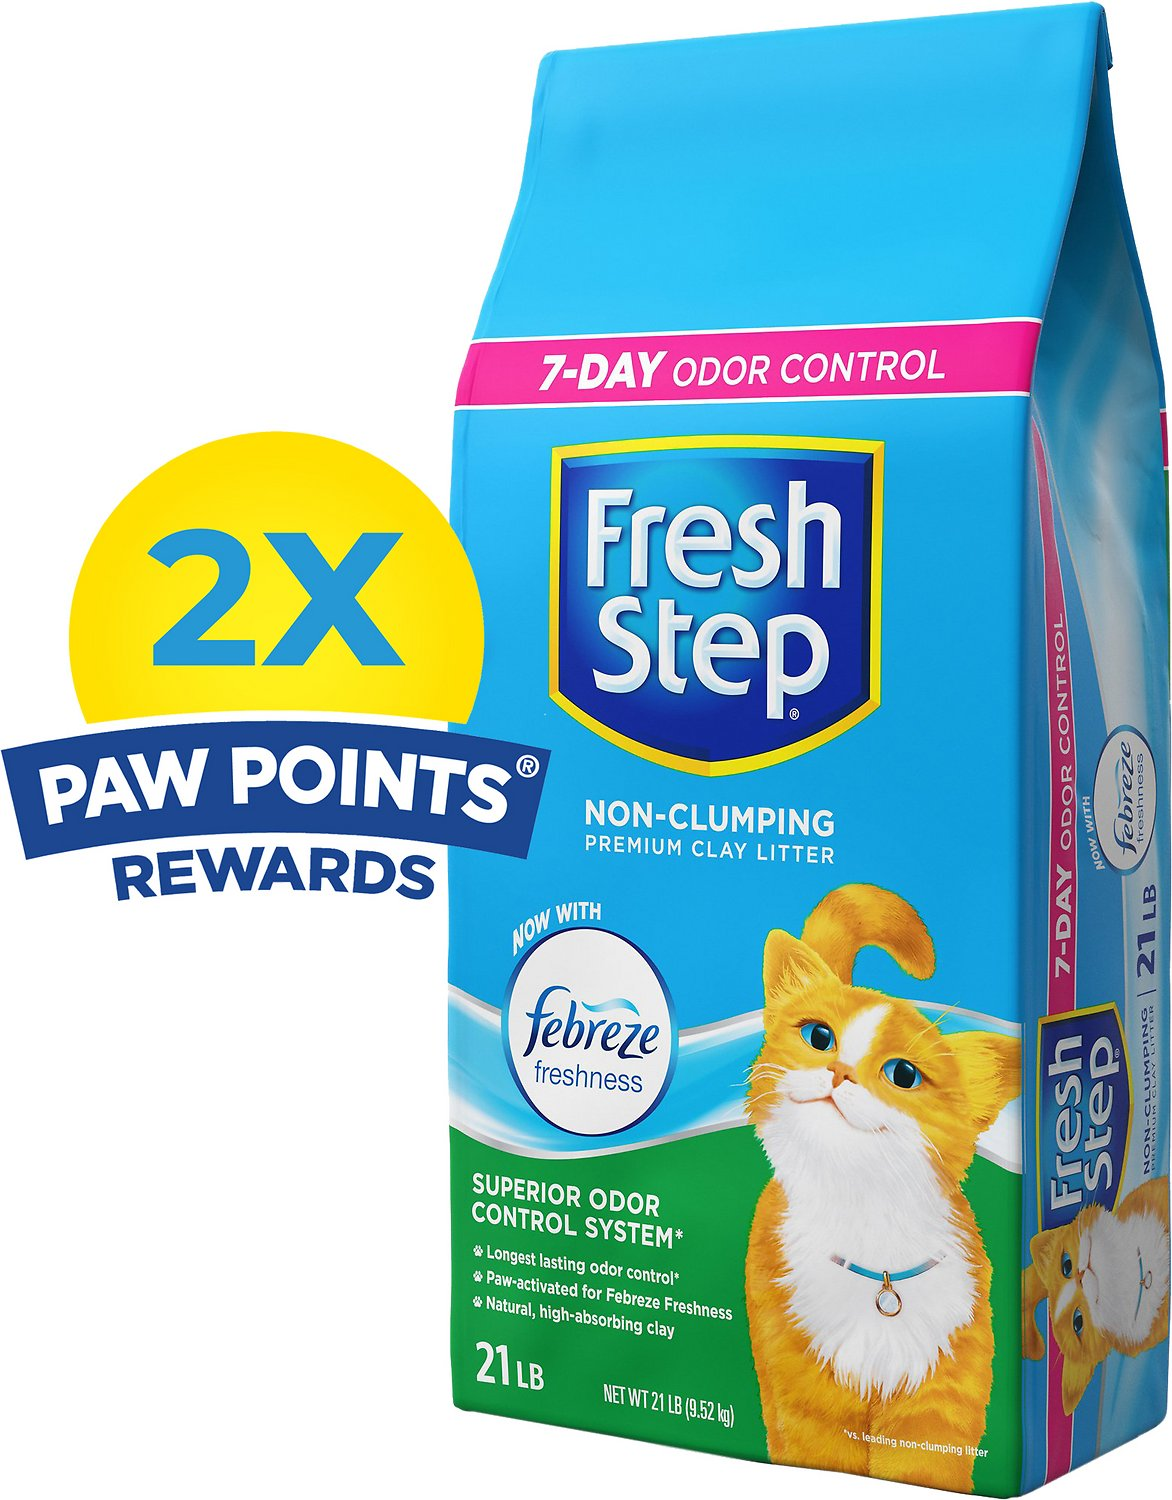 Fresh Step Scented Non-Clumping Clay Cat Litter with Febreeze, 21-lb bag